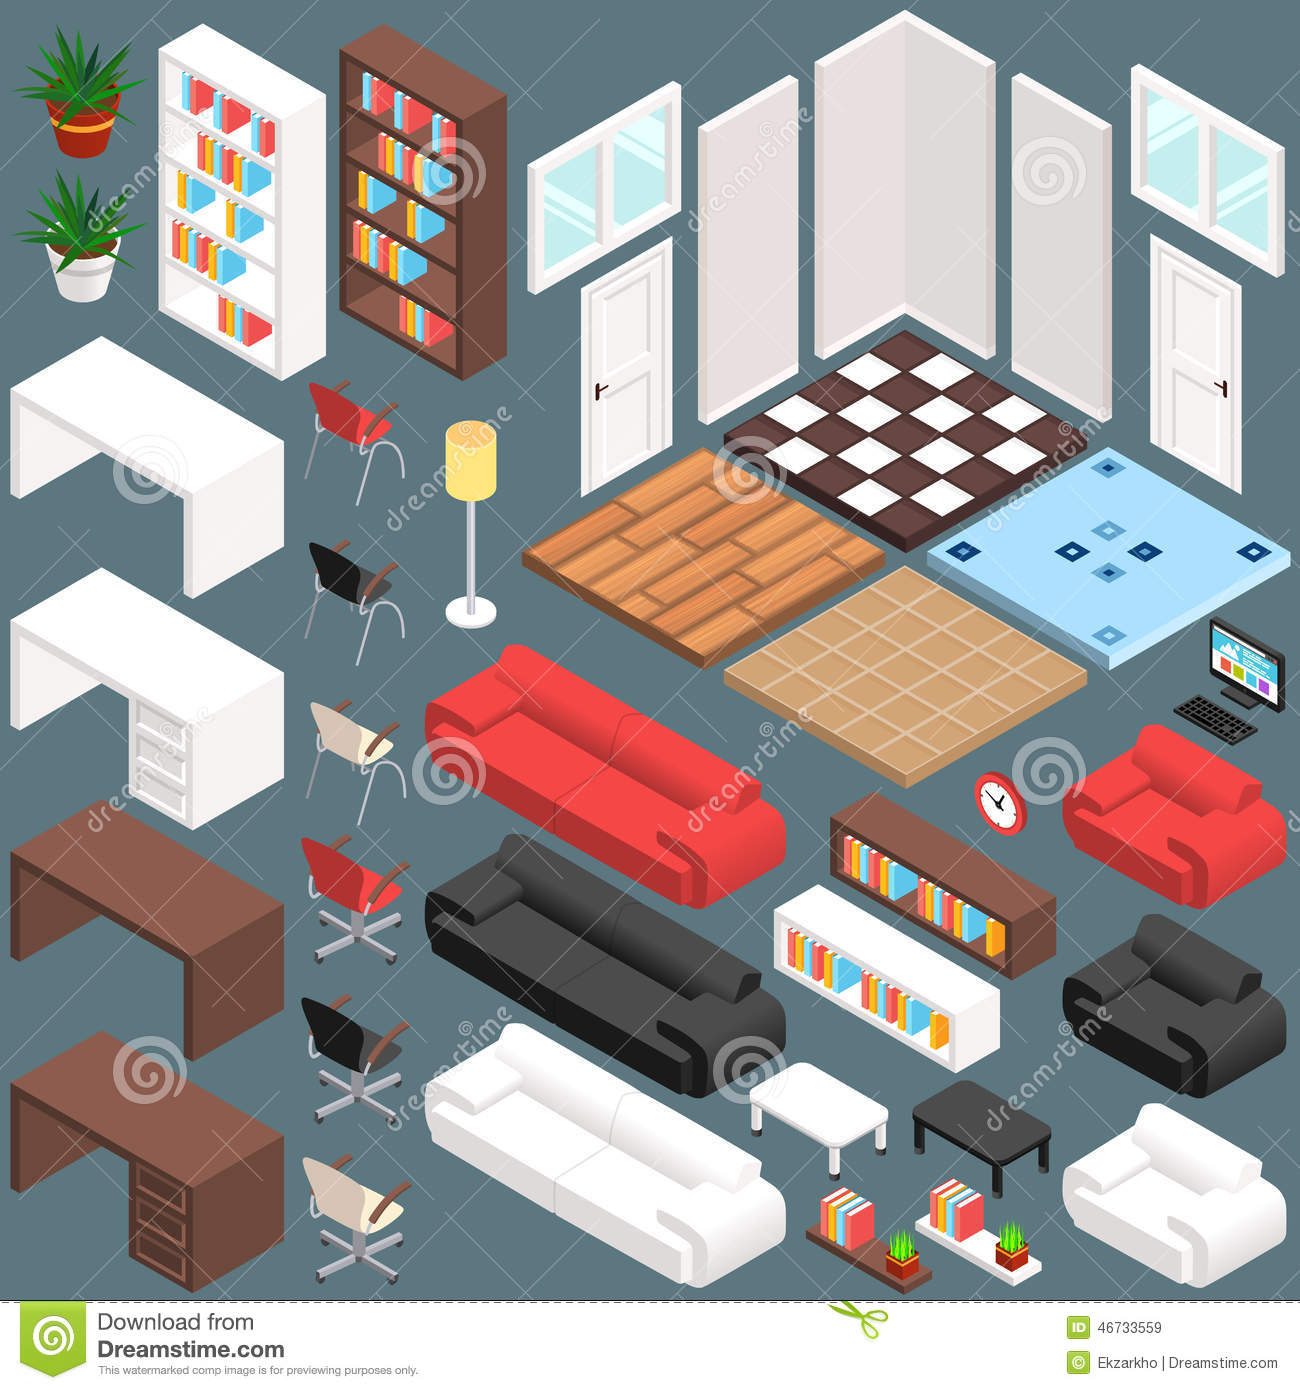 Isometric office planning 3d vector creation kit stock for 3d office planner